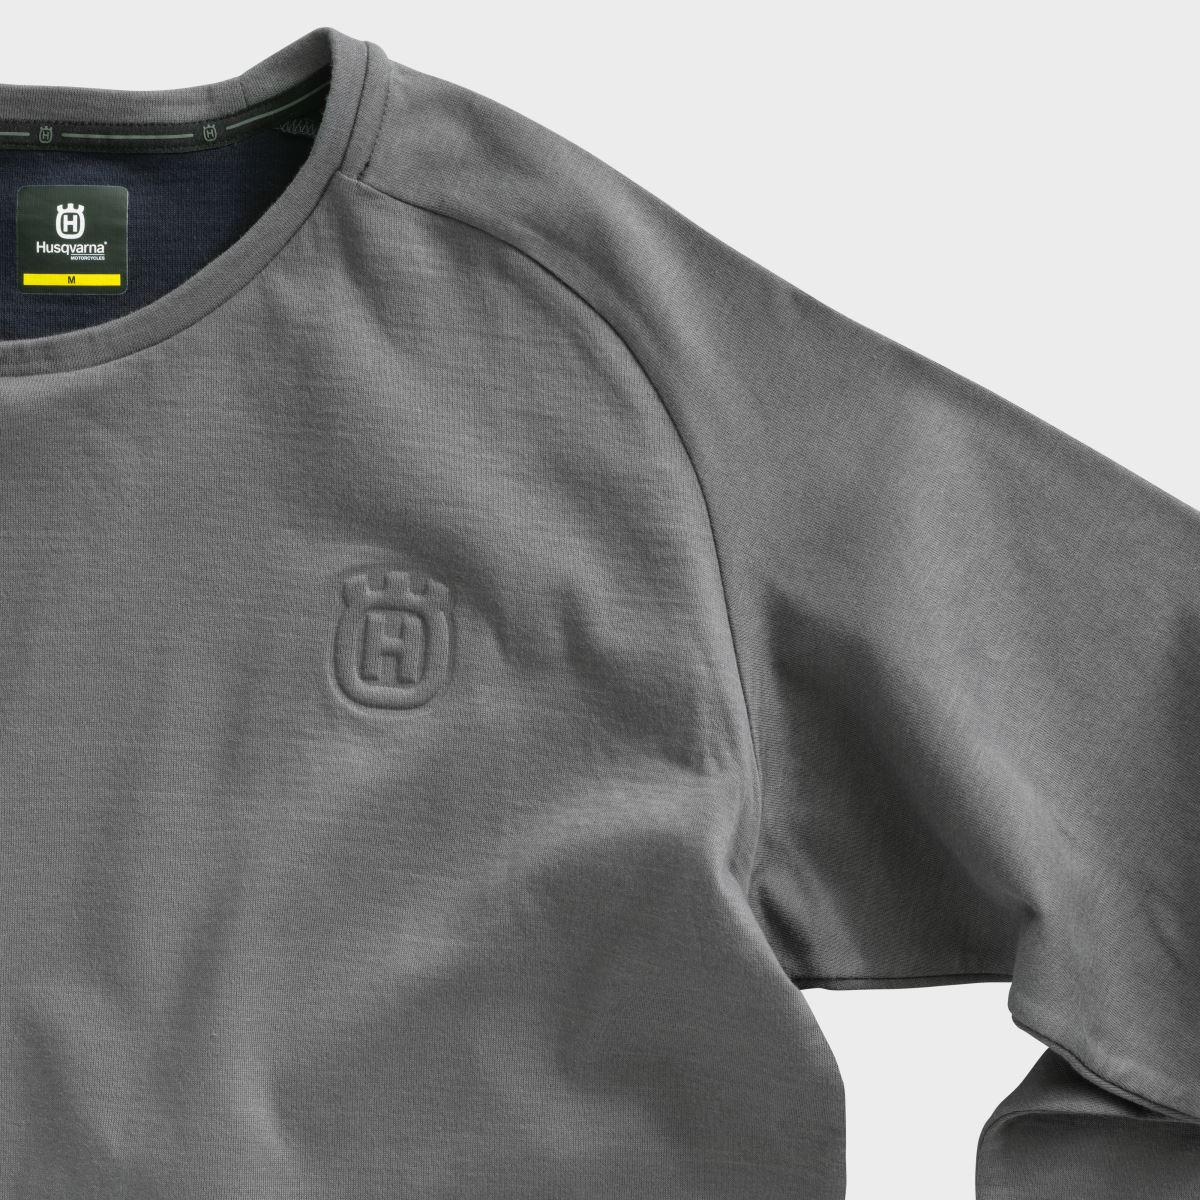 ORIGIN SWEATER - CASUAL CLOTHING COLLECTION 2020